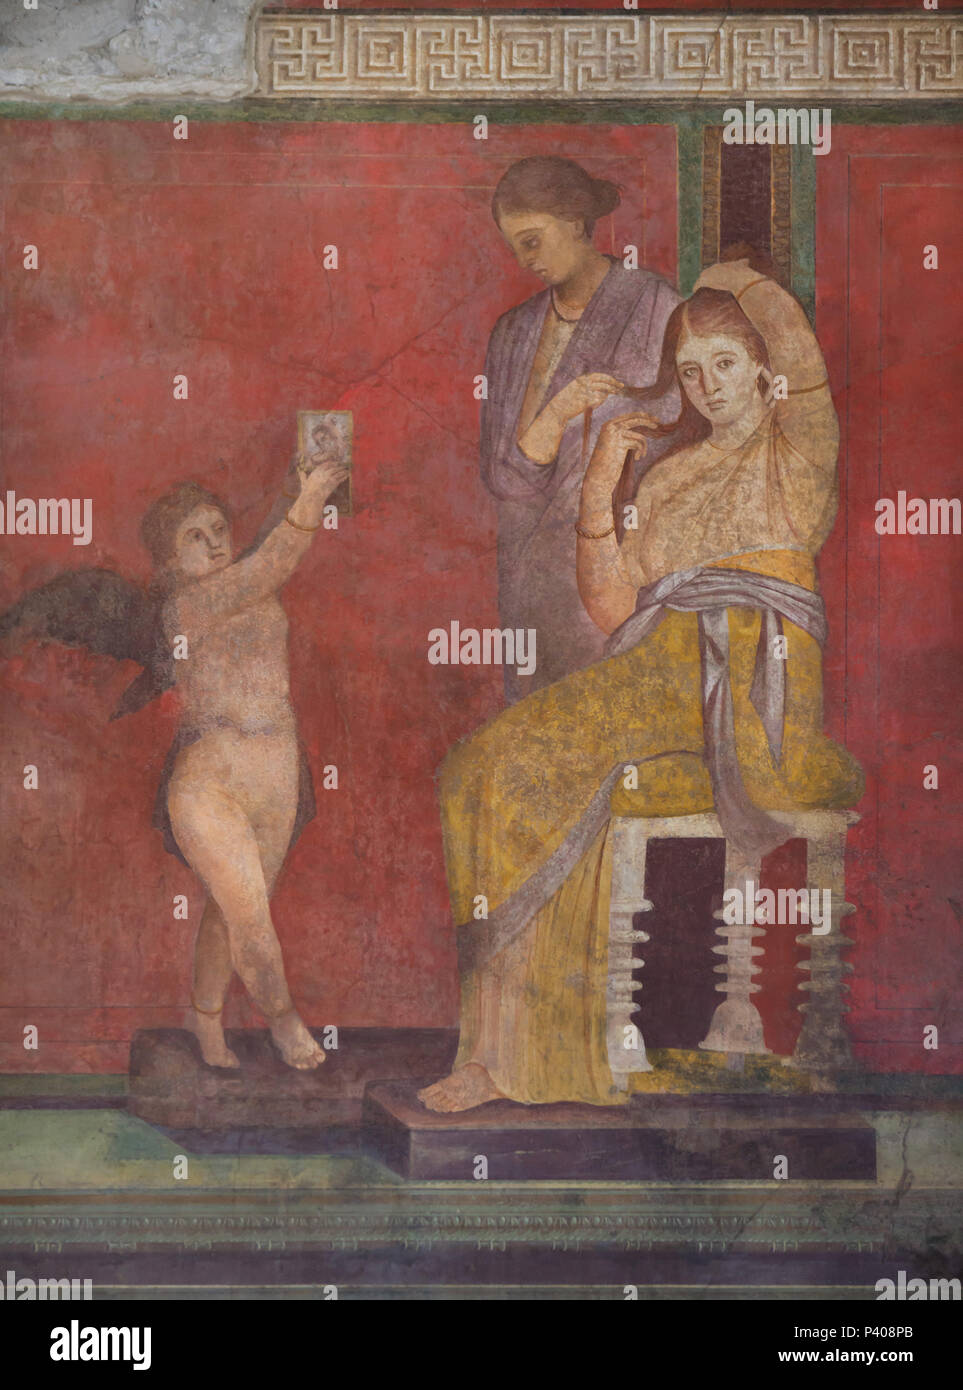 Dionysian Mysteries (Bacchian Mysteries) depicted in the Roman fresco in the triclinium (Roman dining room) in the Villa of the Mysteries (Villa dei Misteri) in the archaeological site of Pompeii (Pompei) near Naples, Campania, Italy. Initiation rite from the mysterious cult of Dionysus (Bacchus) is probably depicted in the murals. This fresco shows the initiate after the rite being prepared while Eros holds up a mirror to her. Stock Photo